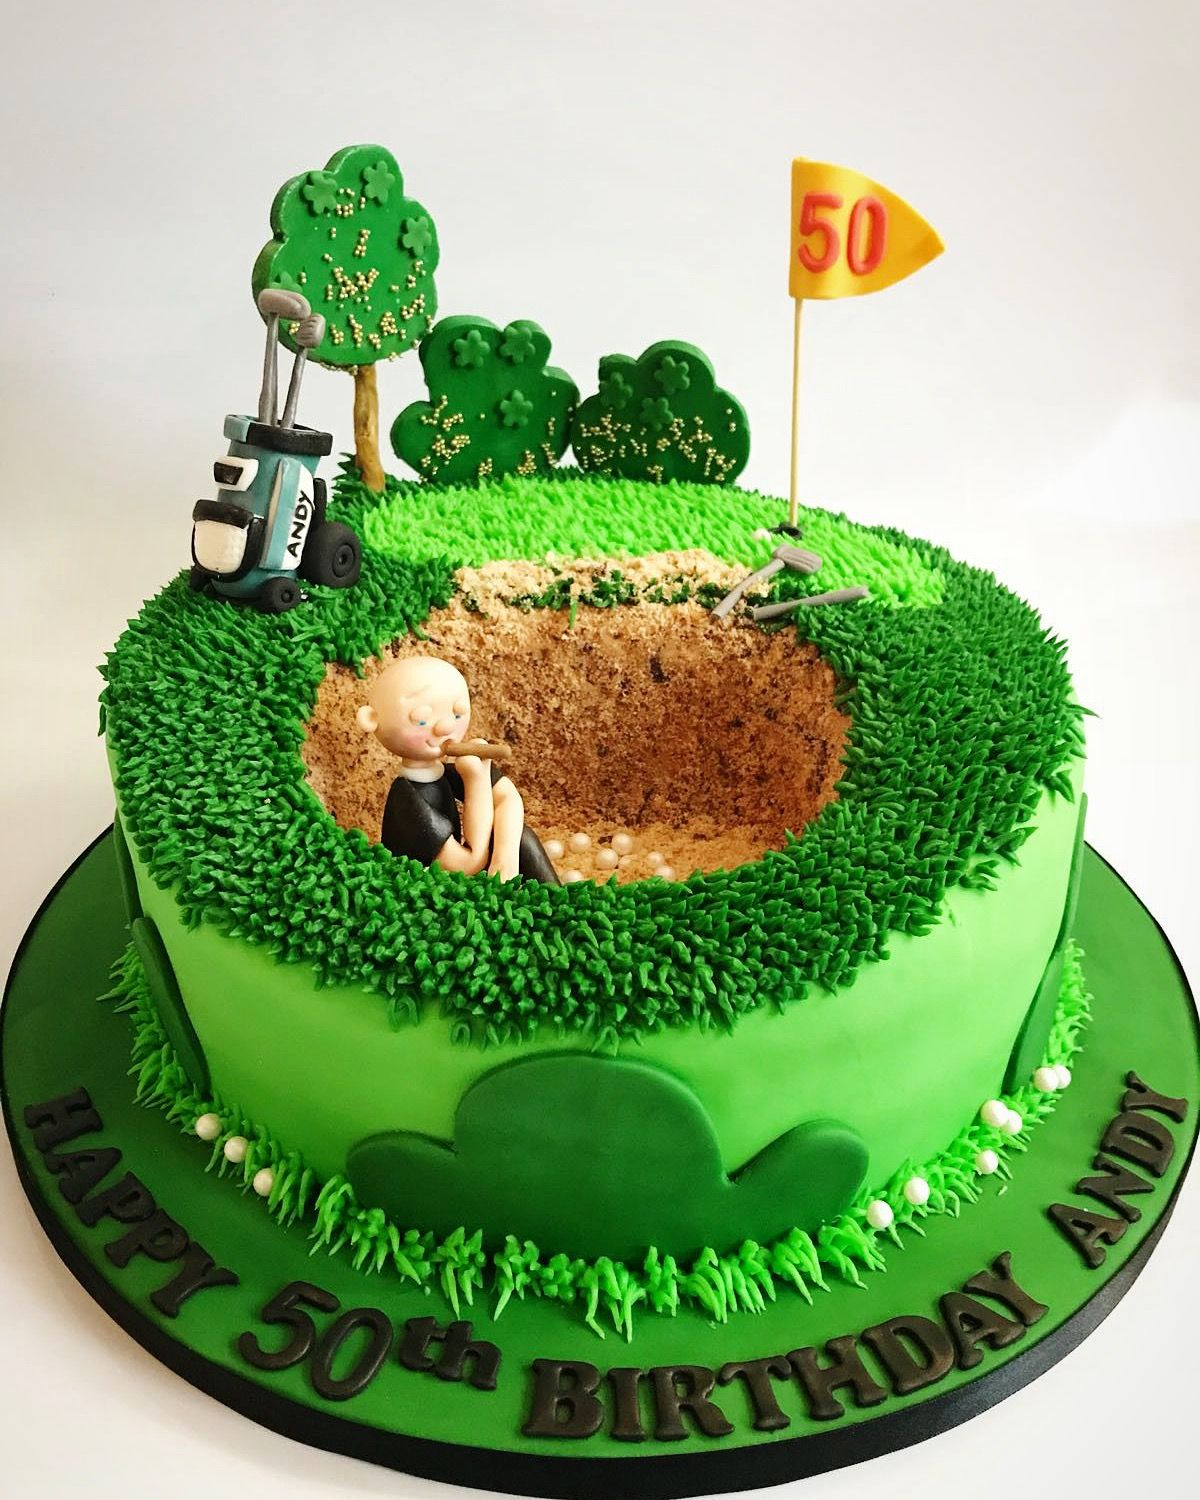 Pleasing Golf Themed Cake With Images Golf Themed Cakes Golf Birthday Birthday Cards Printable Trancafe Filternl